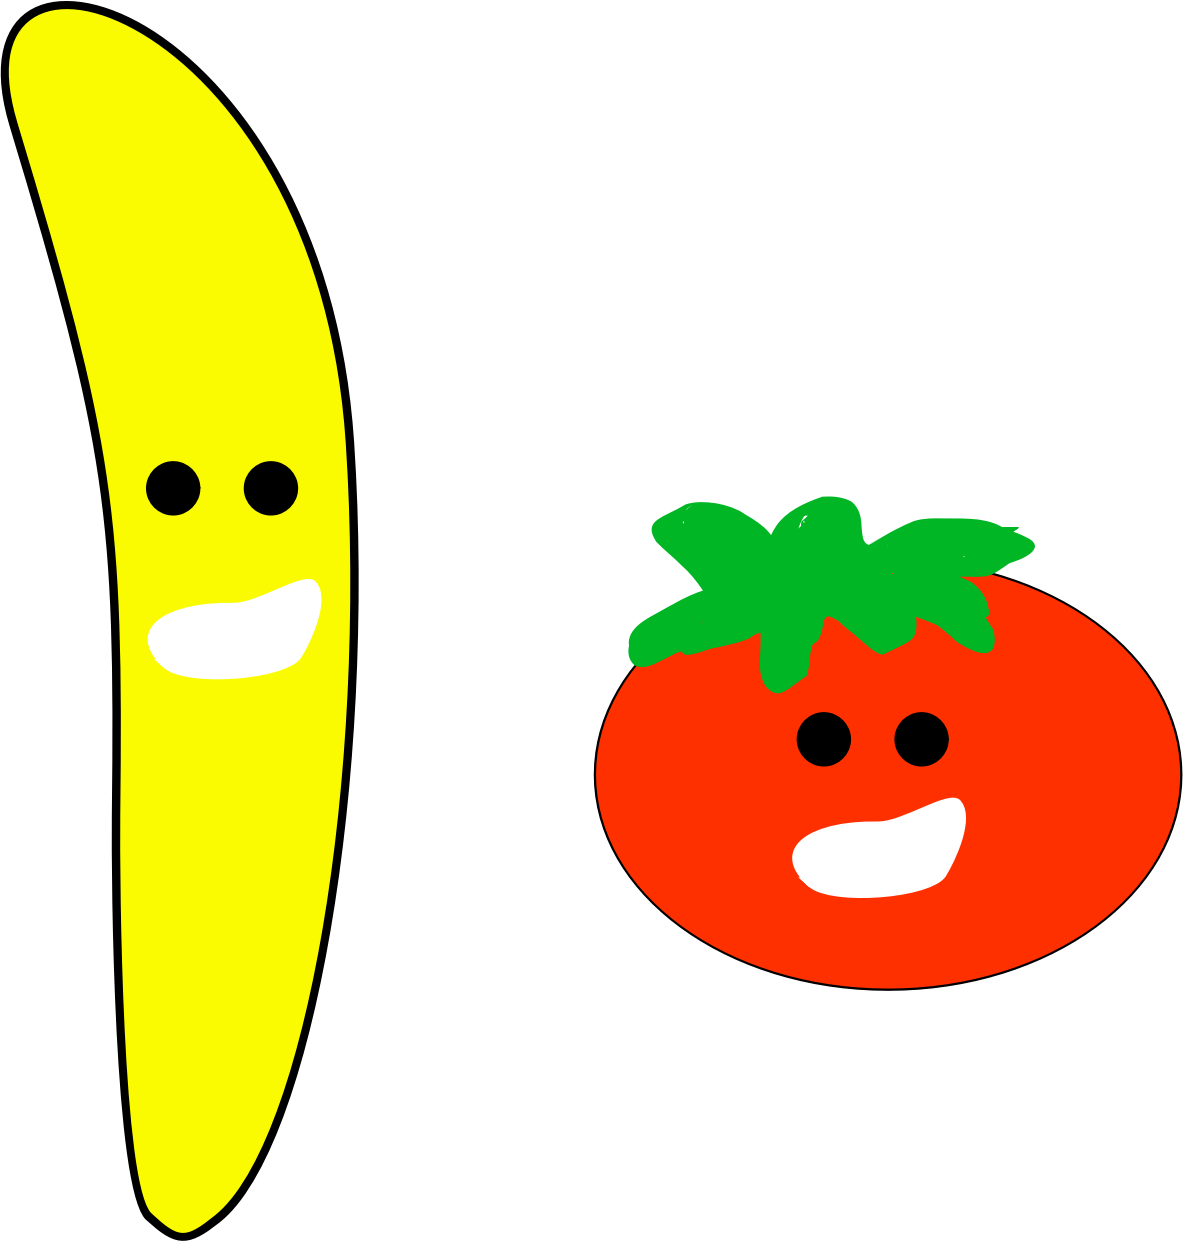 Banana and Tomato  by jykhui